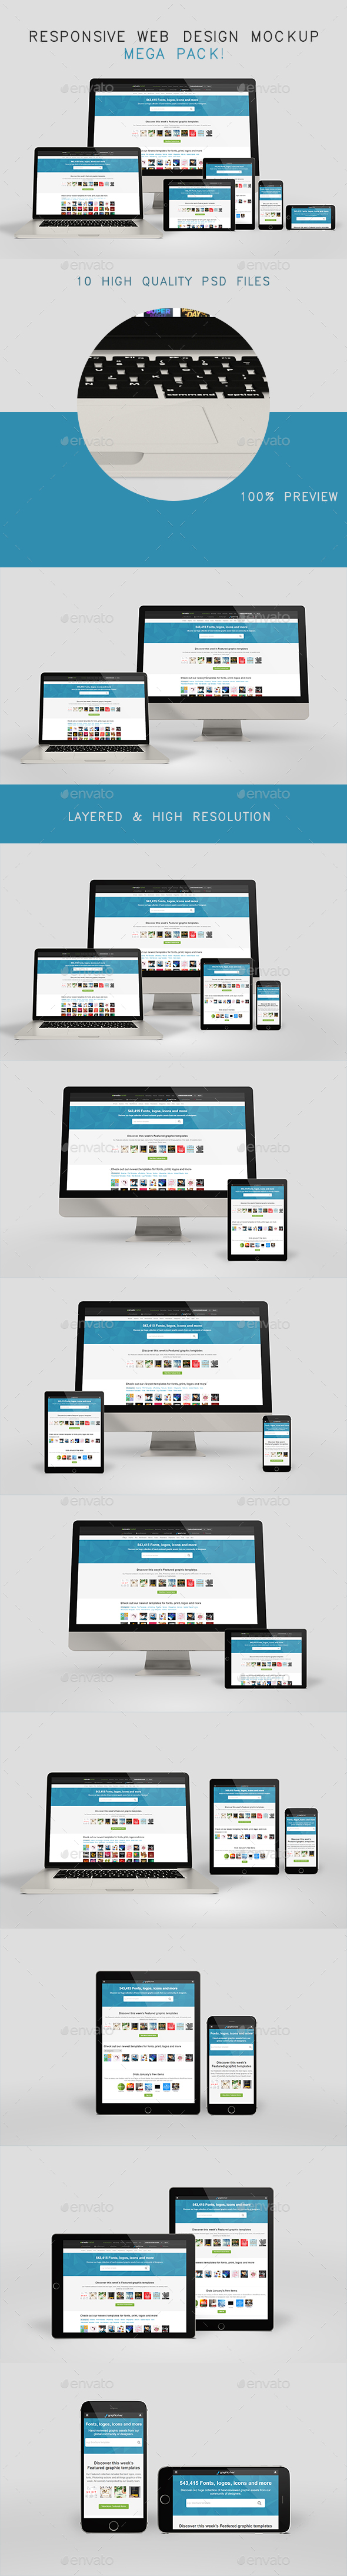 Responsive Web Design Mockup Mega Pack - Multiple Displays